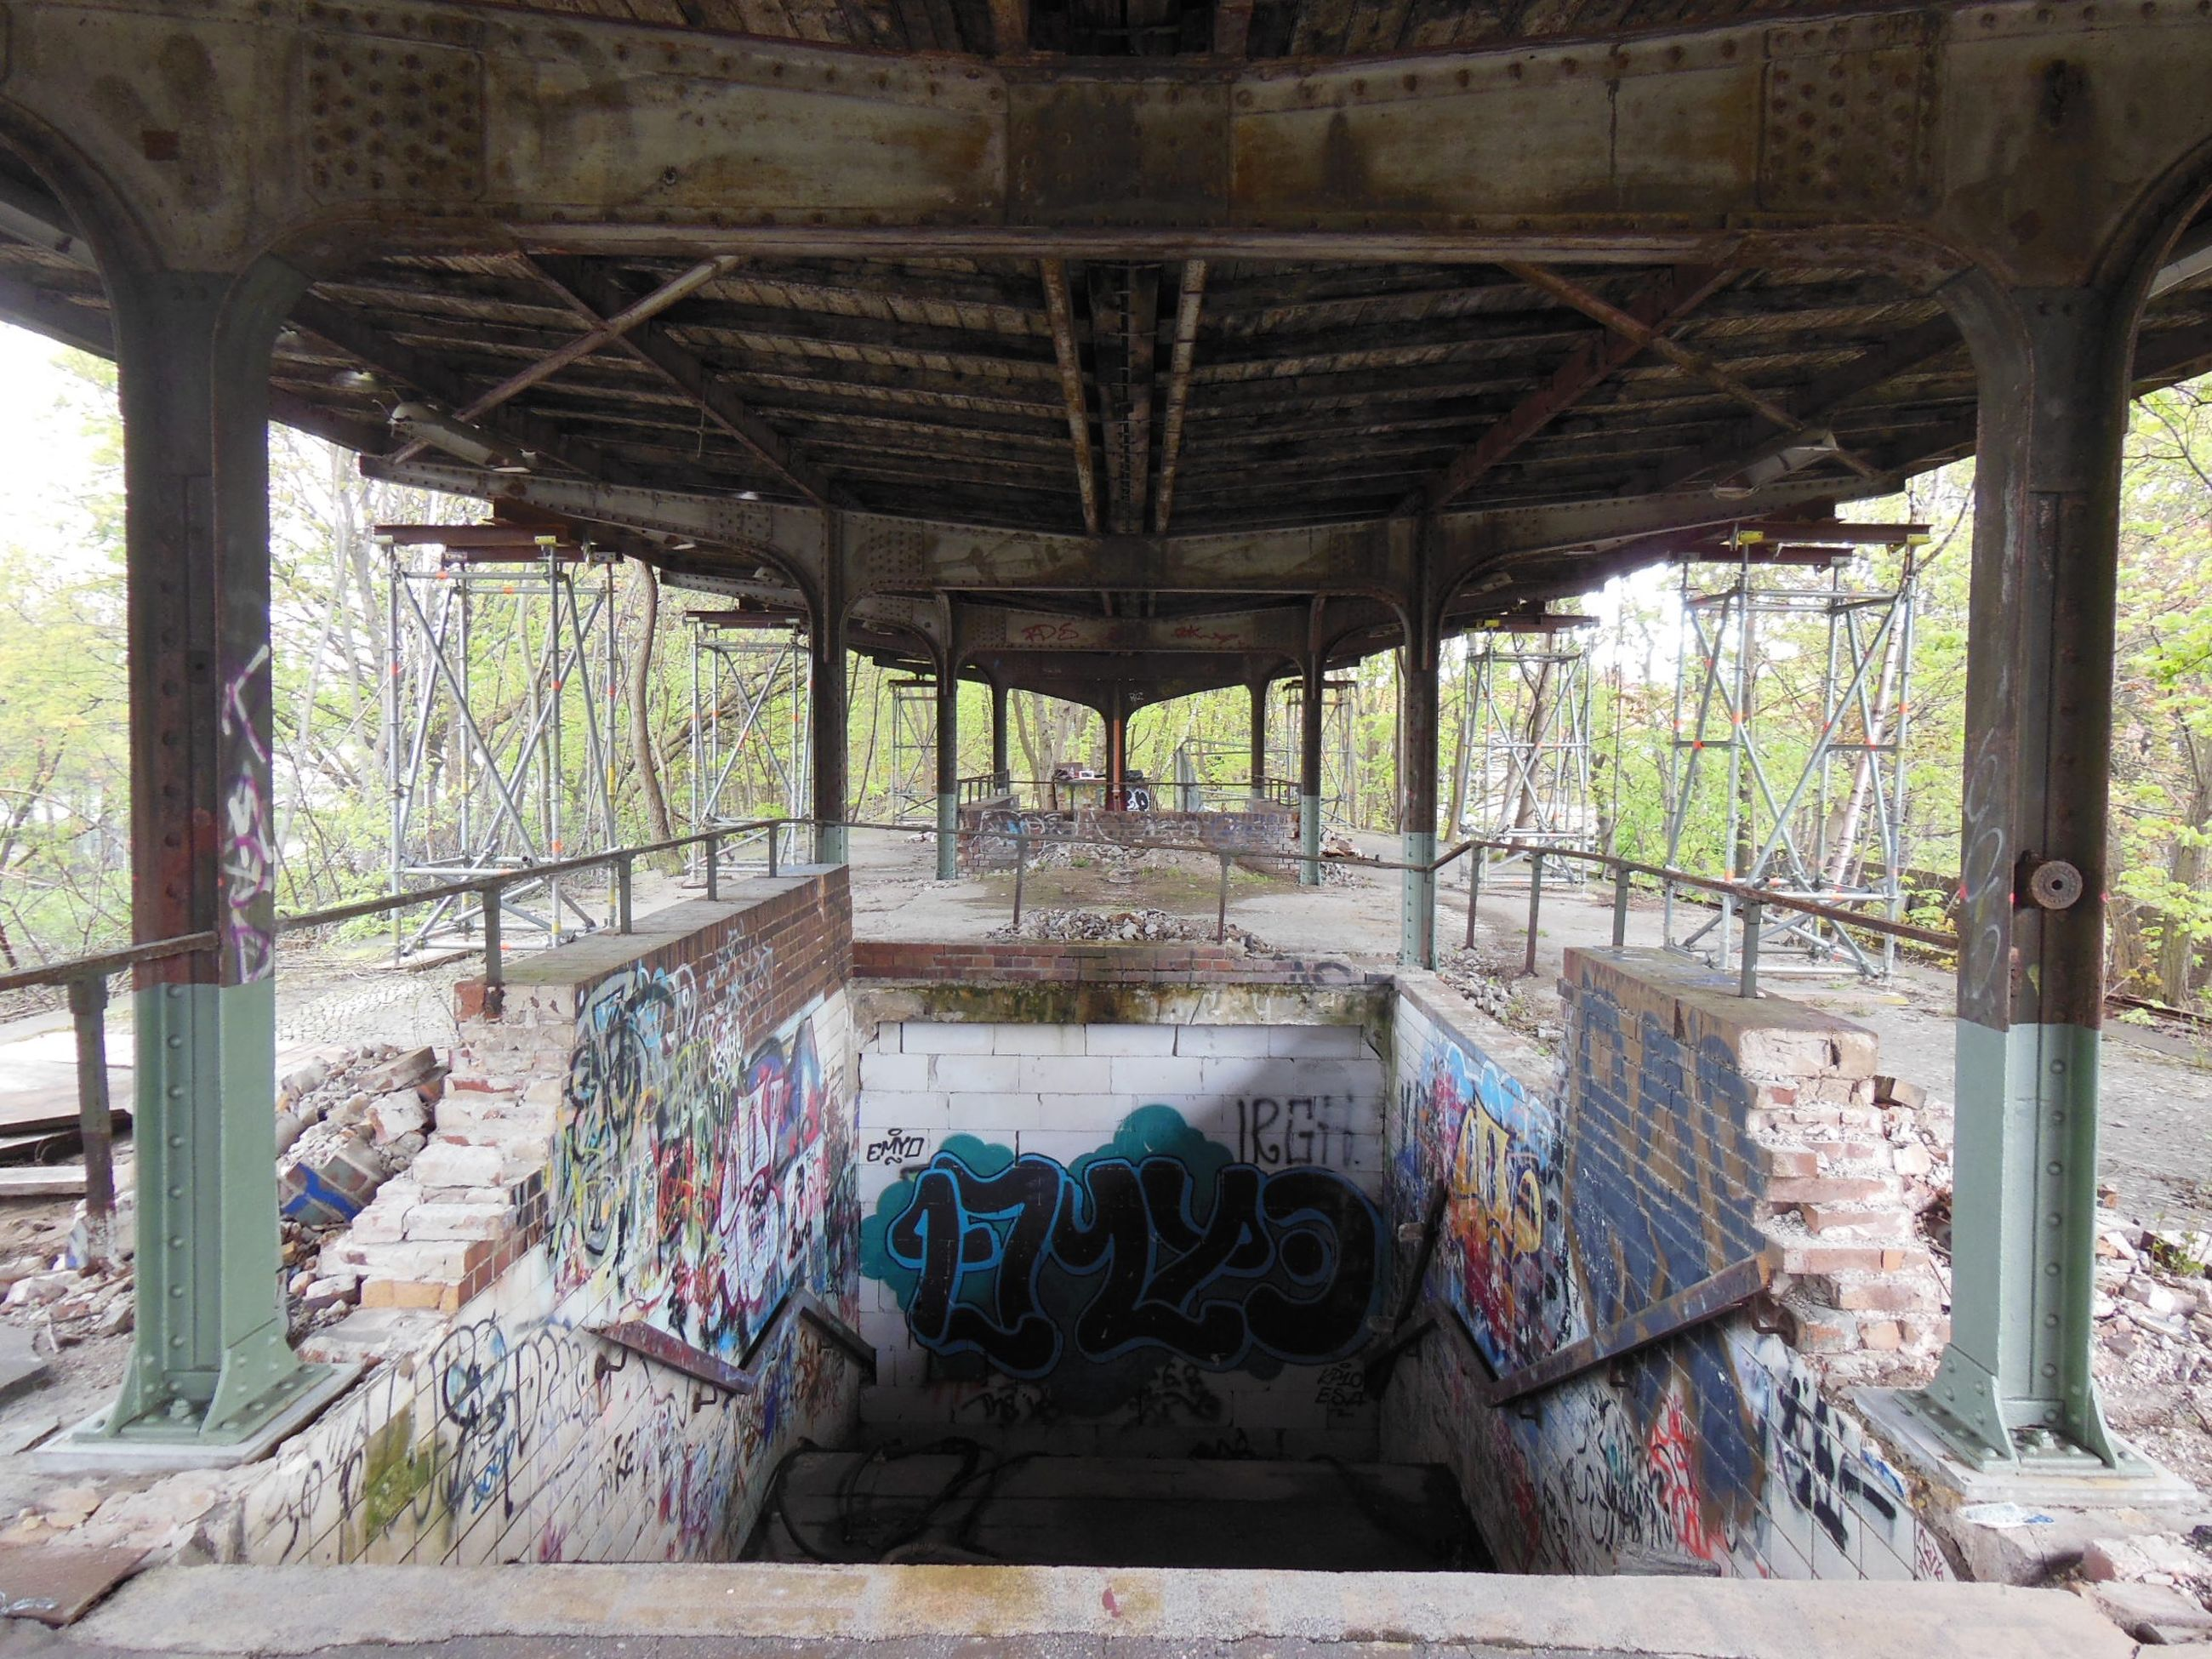 graffiti, built structure, architecture, bridge, bridge - man made structure, connection, day, no people, transportation, architectural column, indoors, below, abandoned, mode of transportation, nature, obsolete, run-down, metal, street art, messy, ceiling